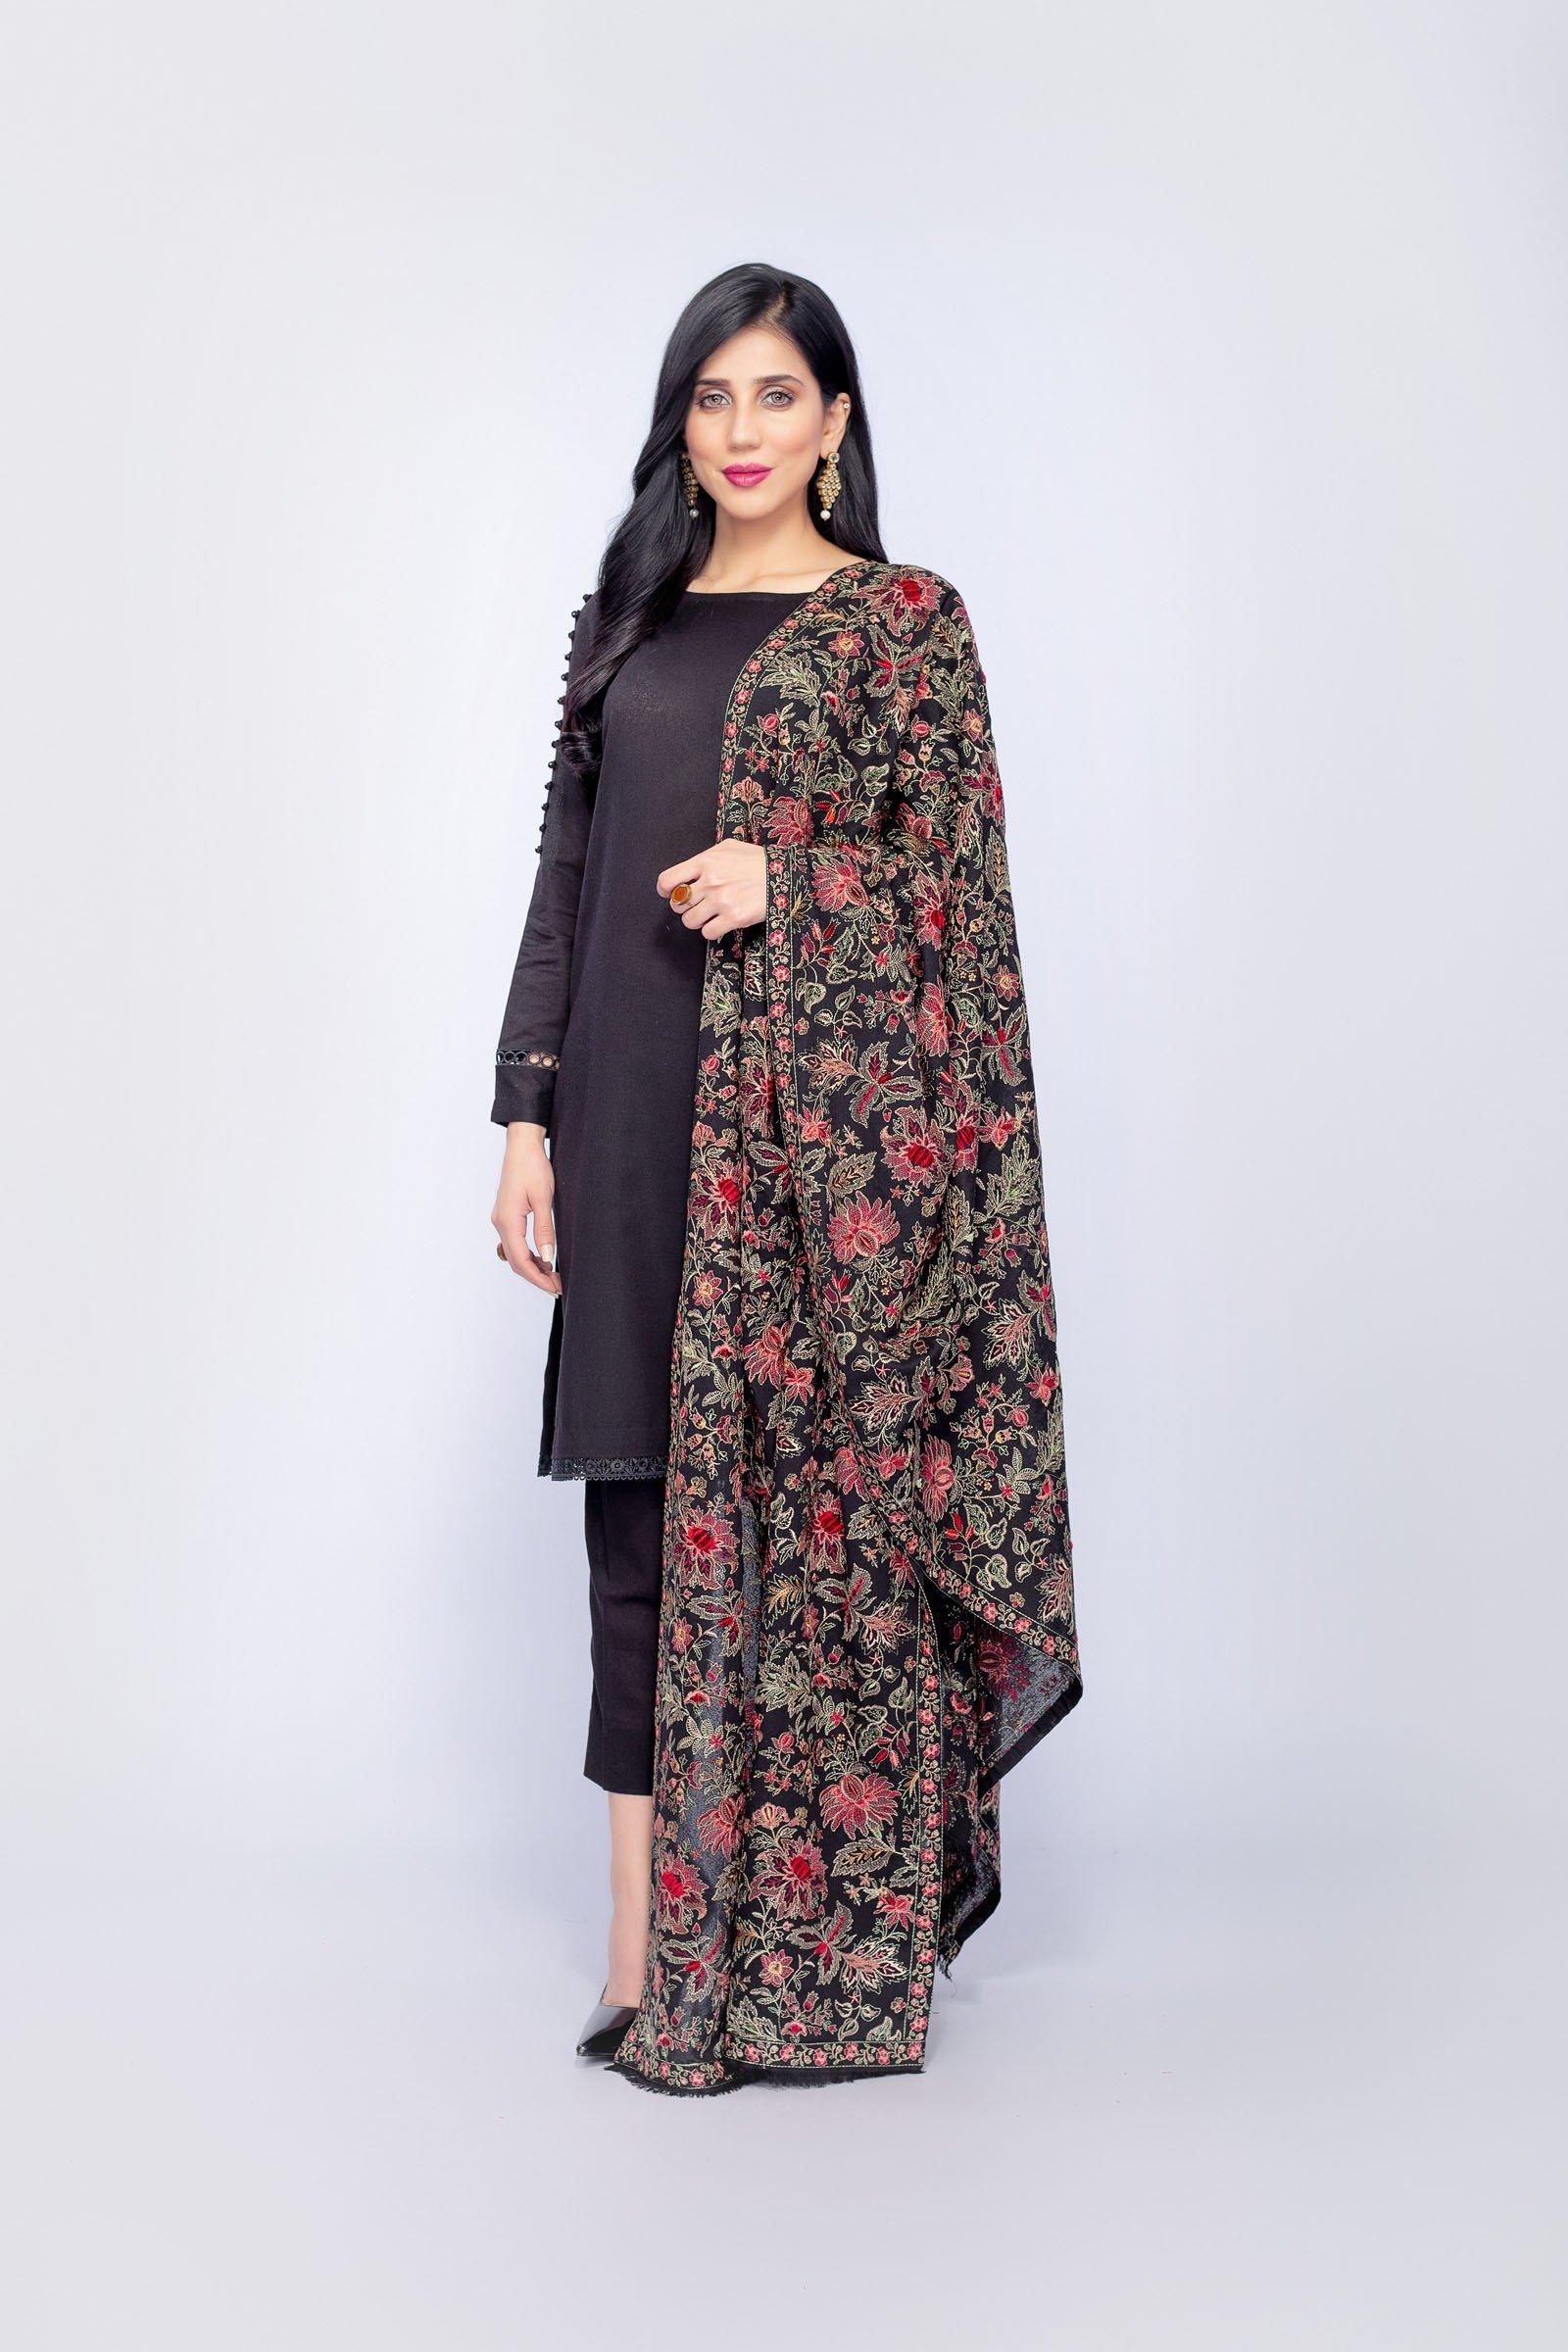 Grace 10 - Formal Heavy Embroidered Karandi Lawn shawl - gracestore.pk